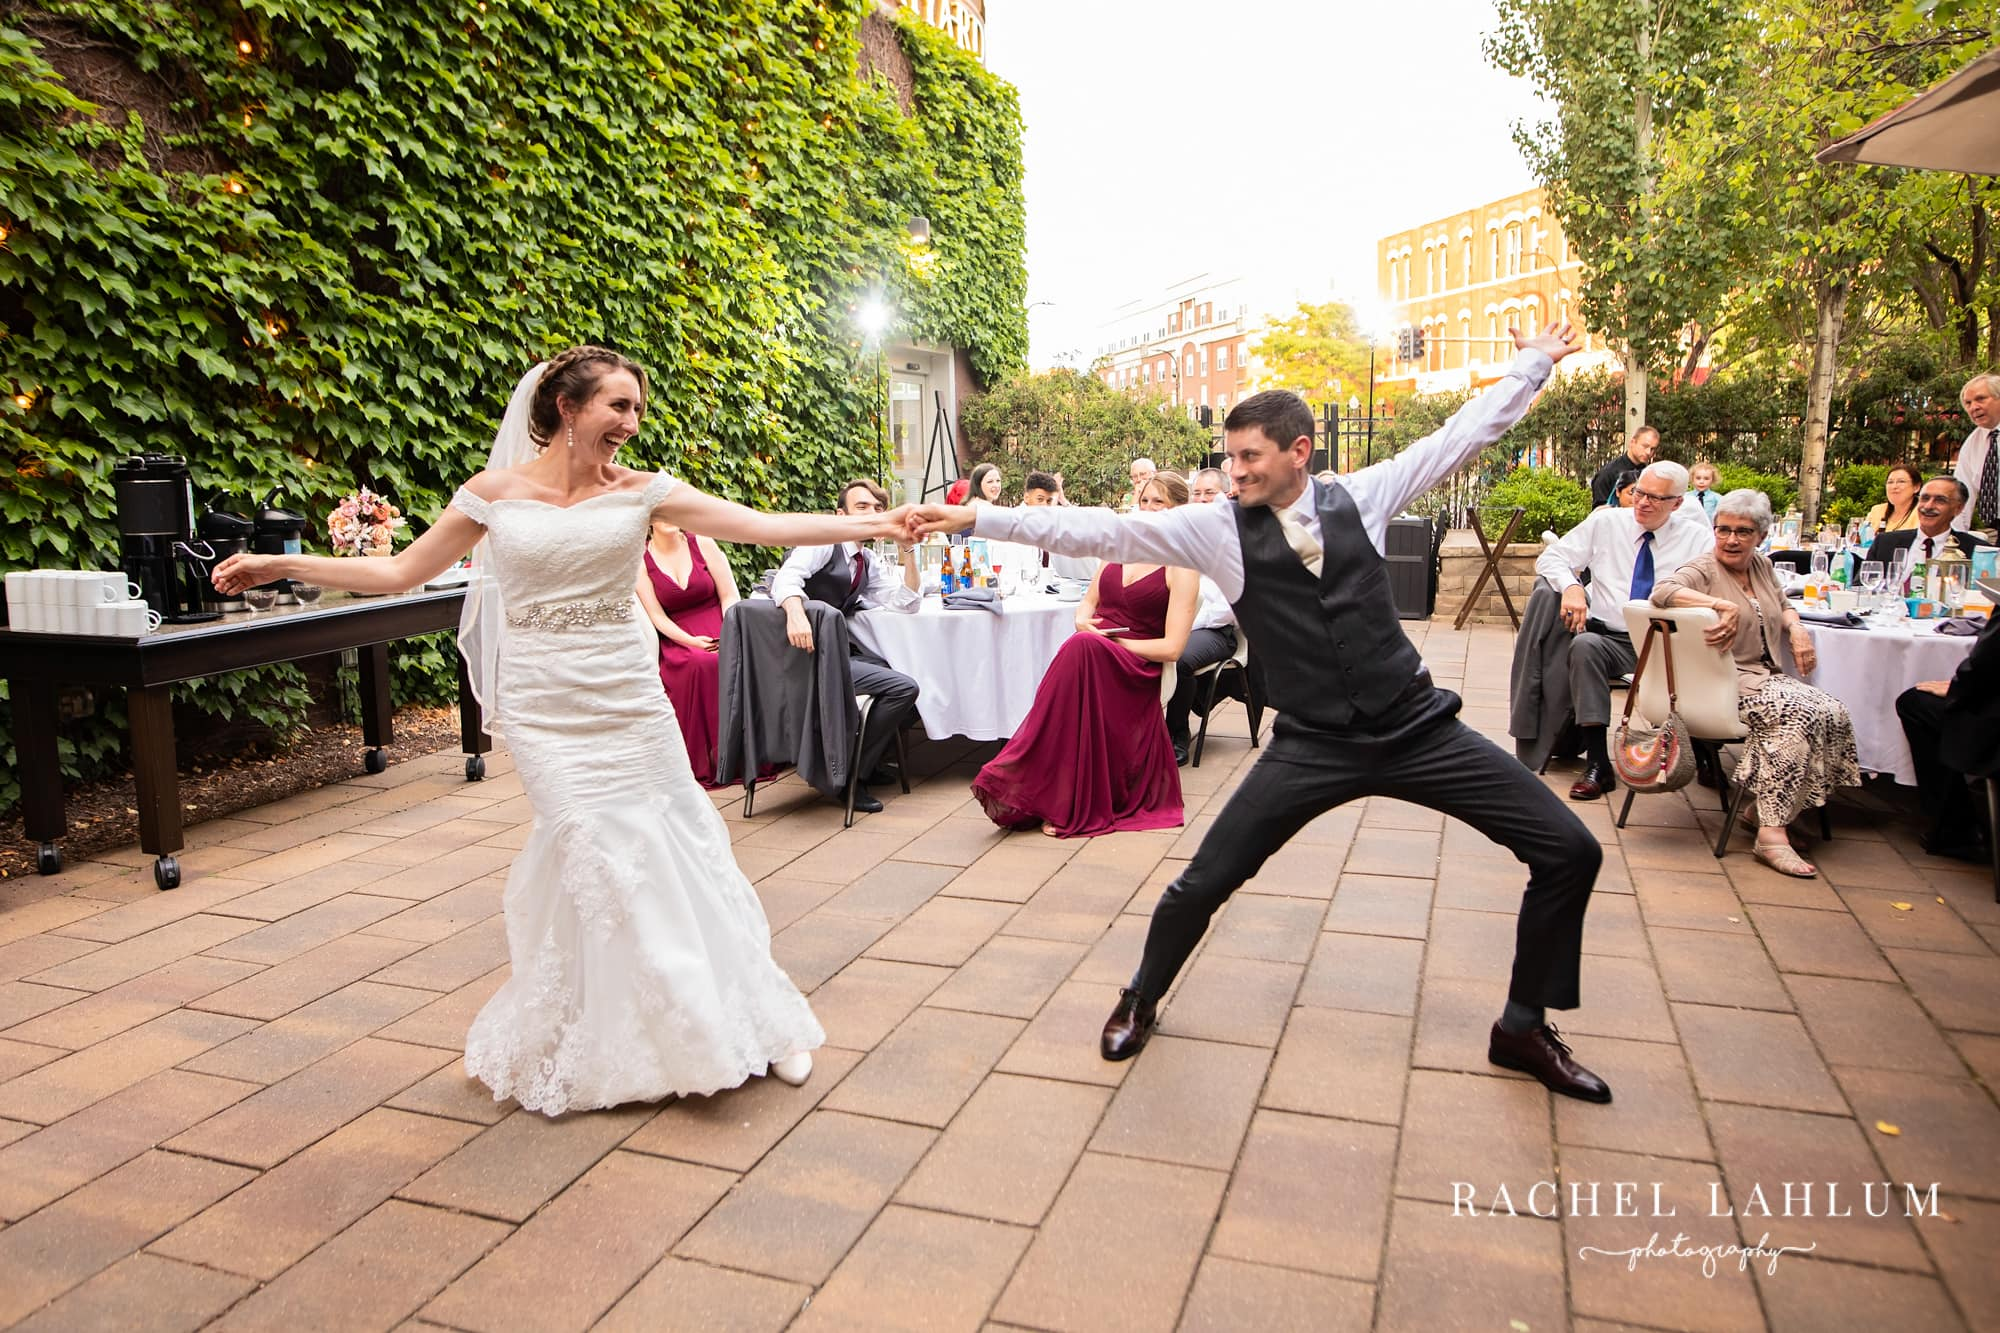 Bride and groom show off dance moves during first wedding dance at Courtyard by Marriot in Minneapolis, Minnesota.